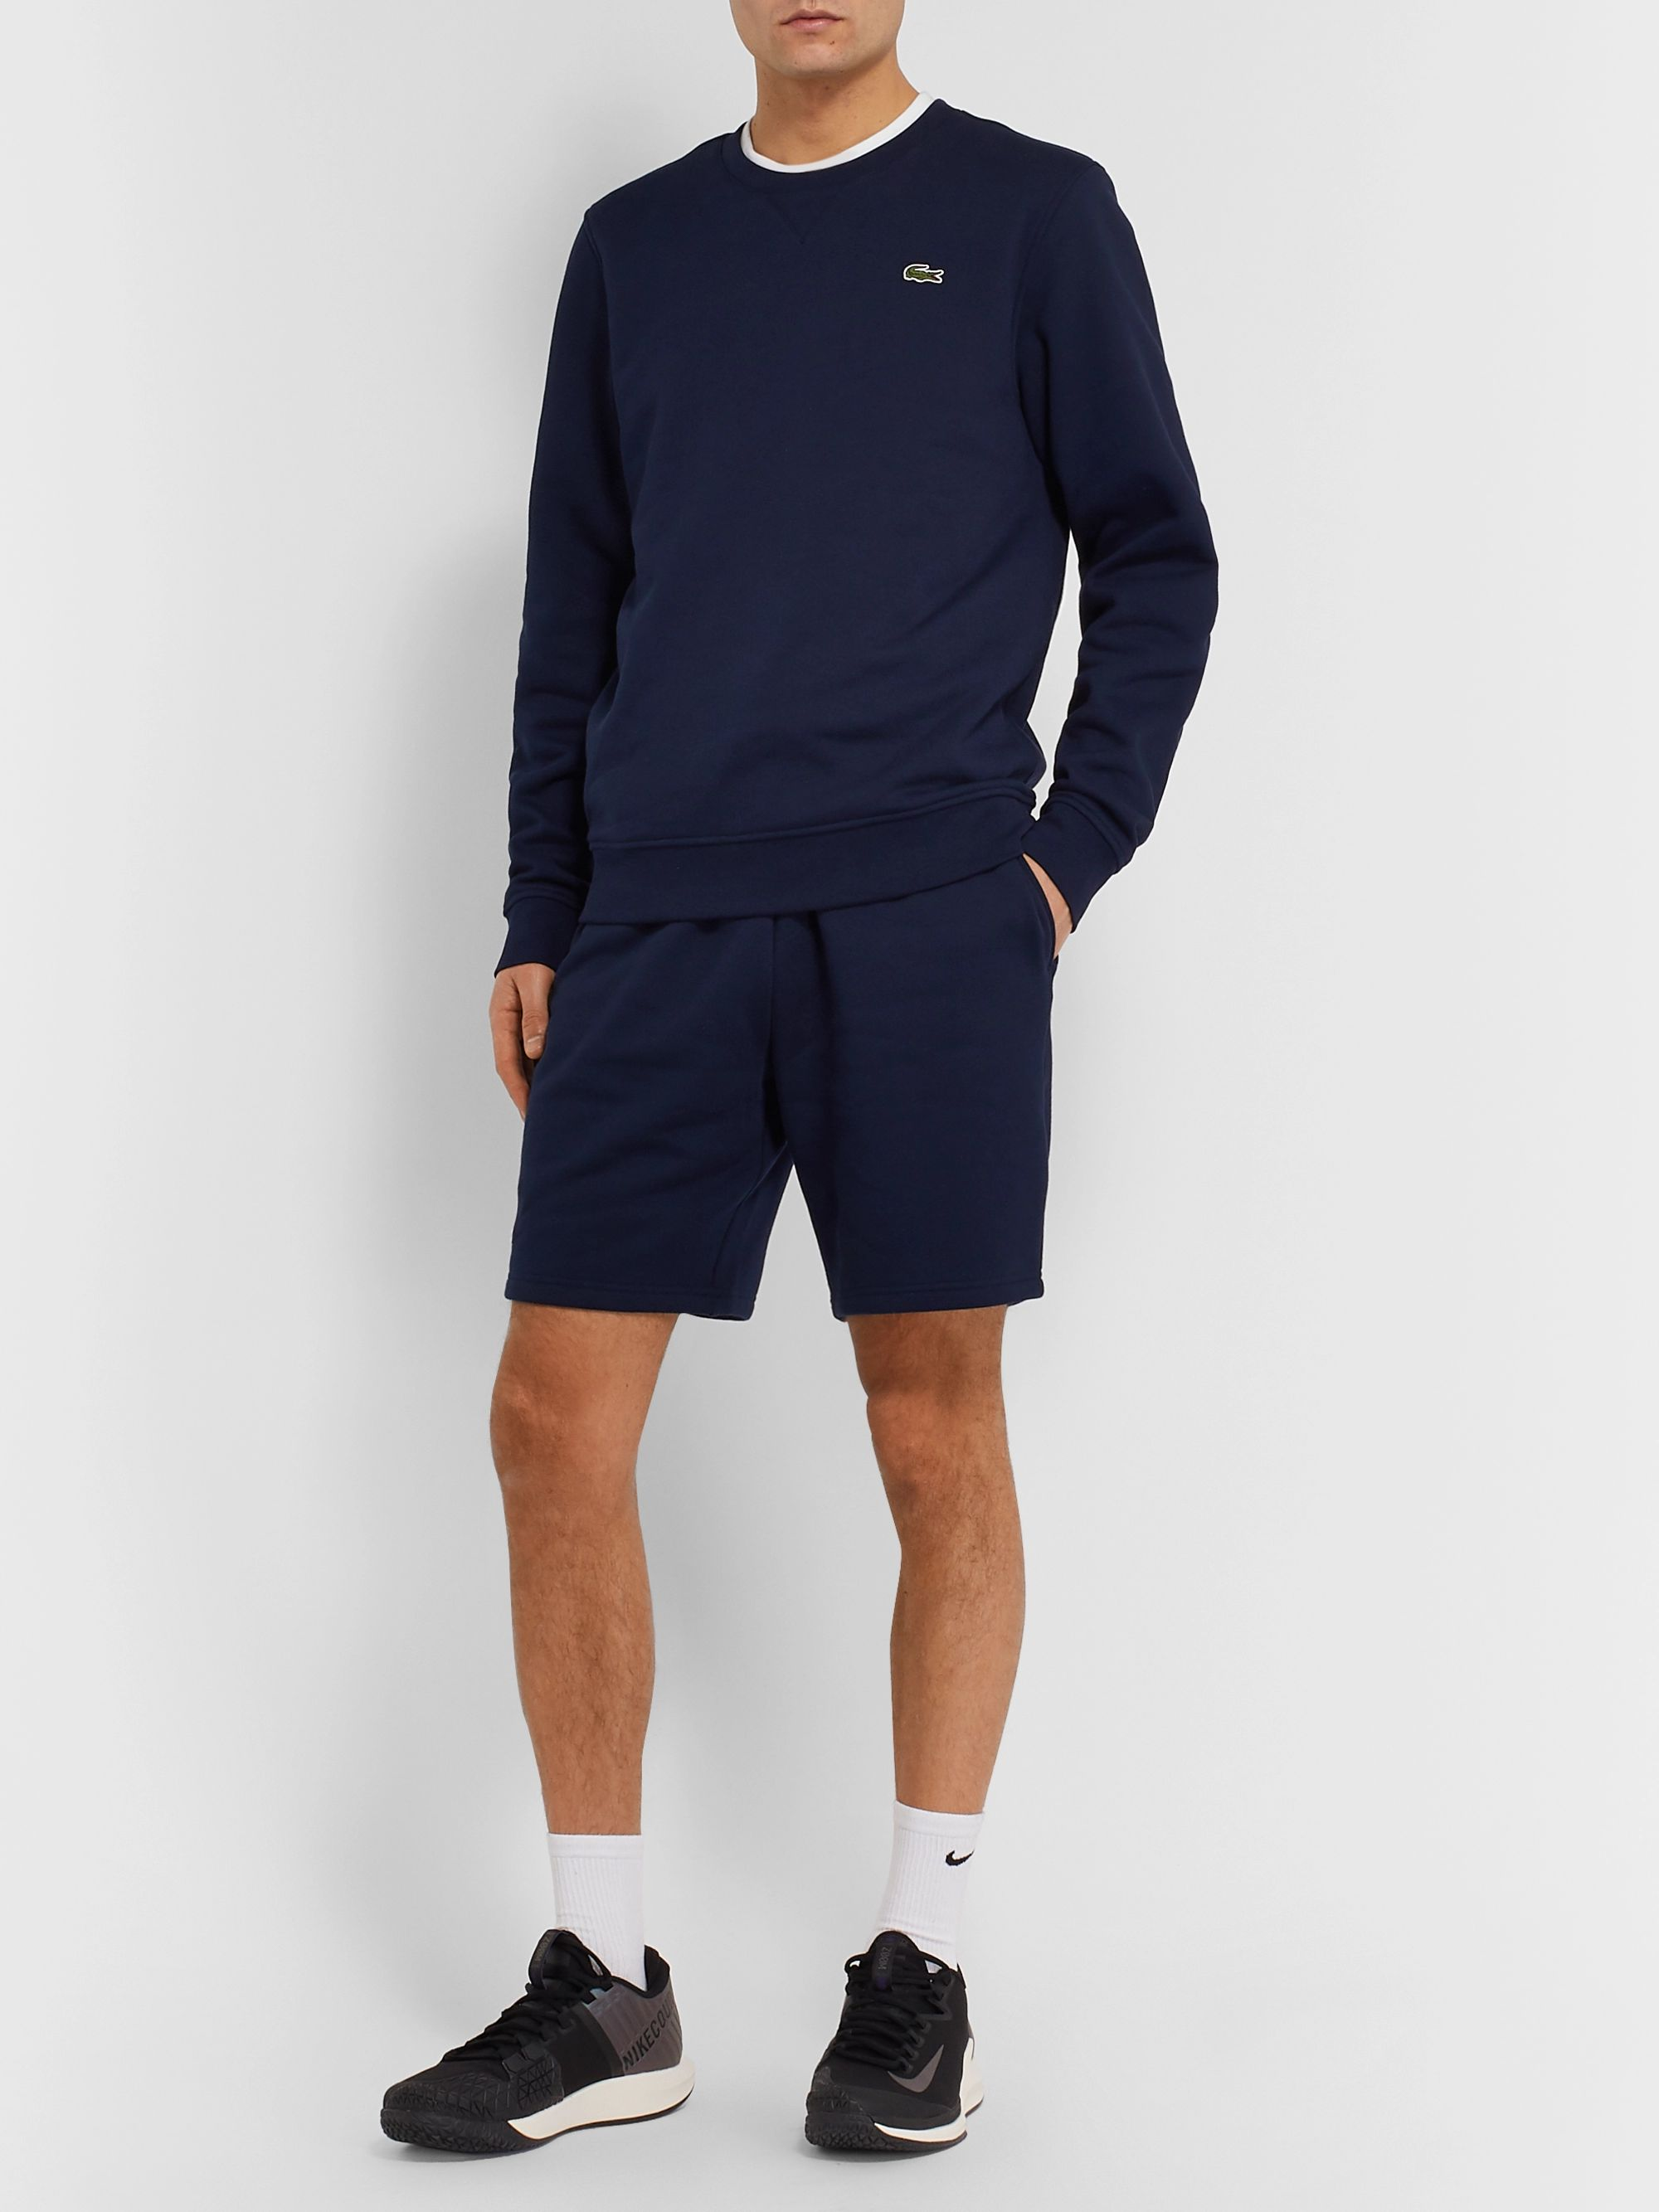 Lacoste Tennis Logo-Appliquéd Fleece-Back Cotton-Blend Jersey Sweatshirt